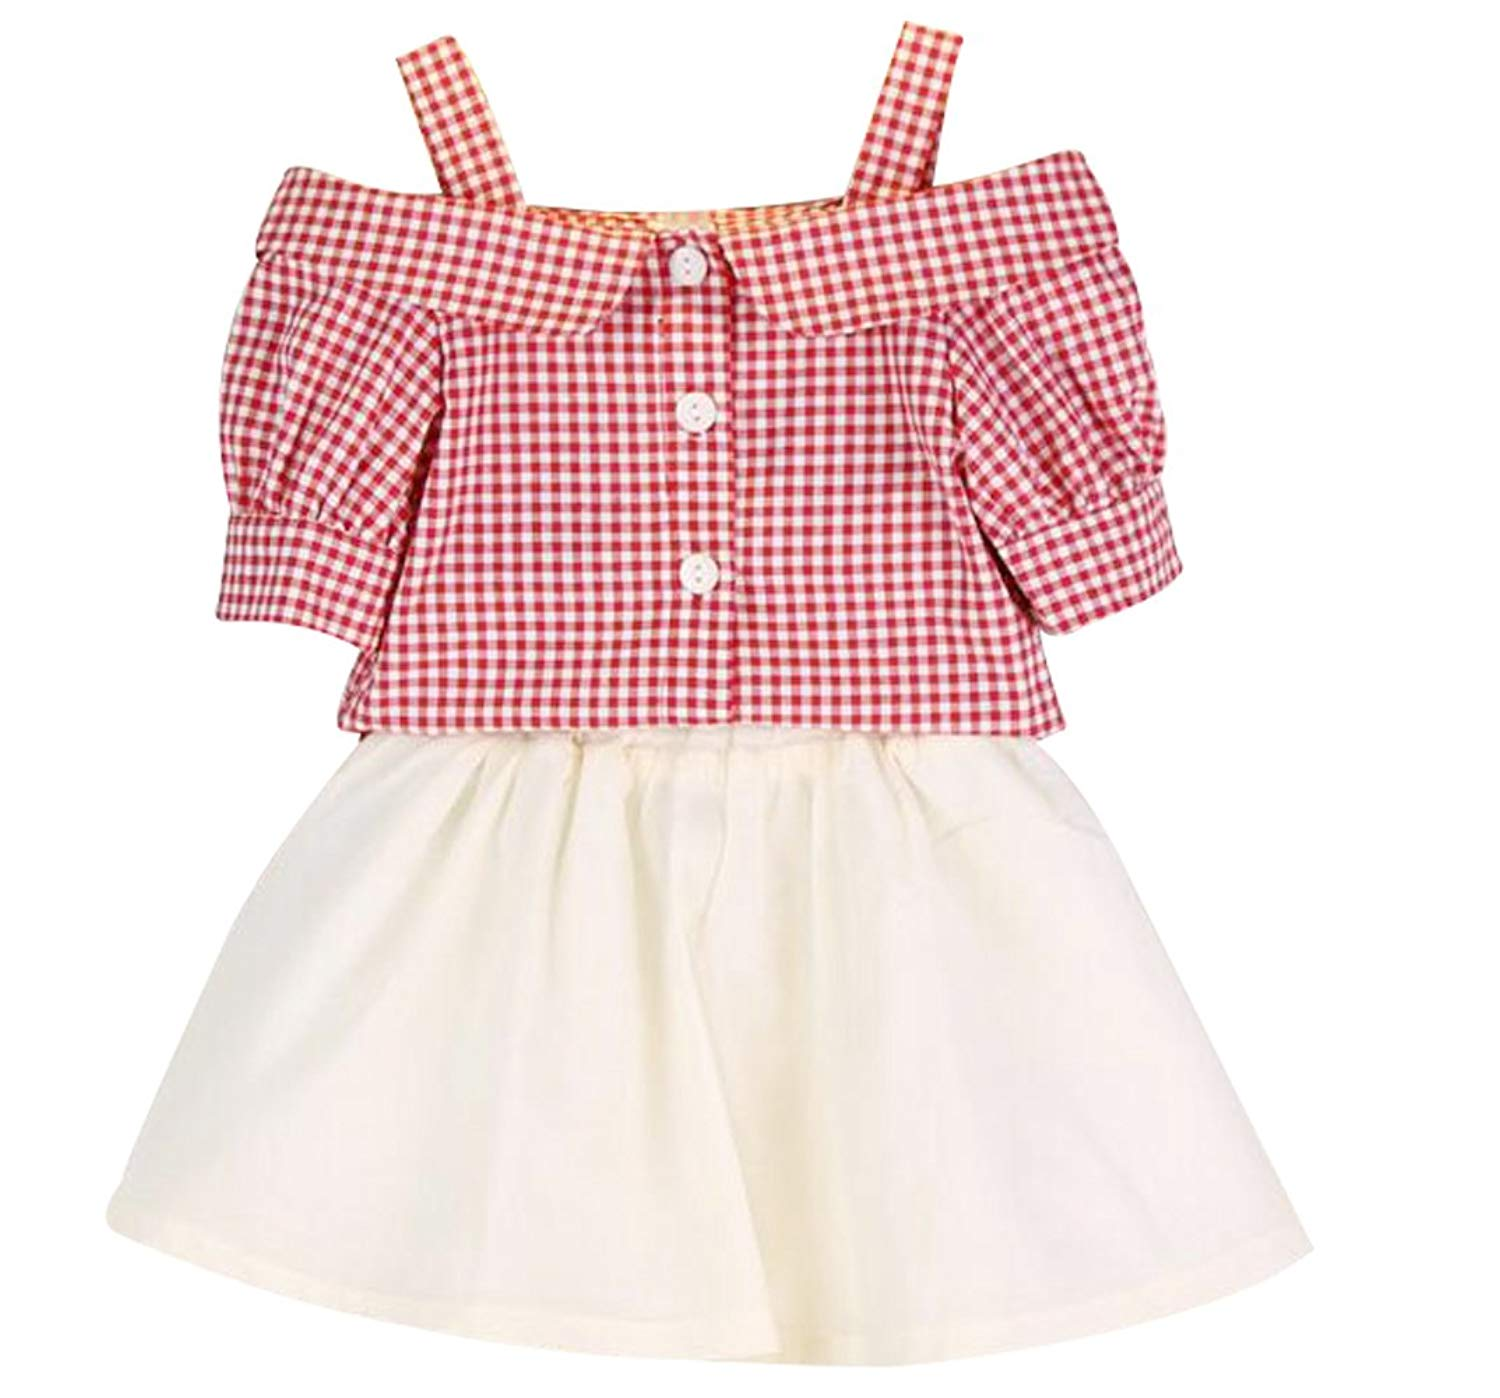 b5114fbf6 Get Quotations · UNIQUEONE Kids Girls Summer Off-Shoulder Plaid Shirt Tops  Tutu Skirts 2Pcs Outfits